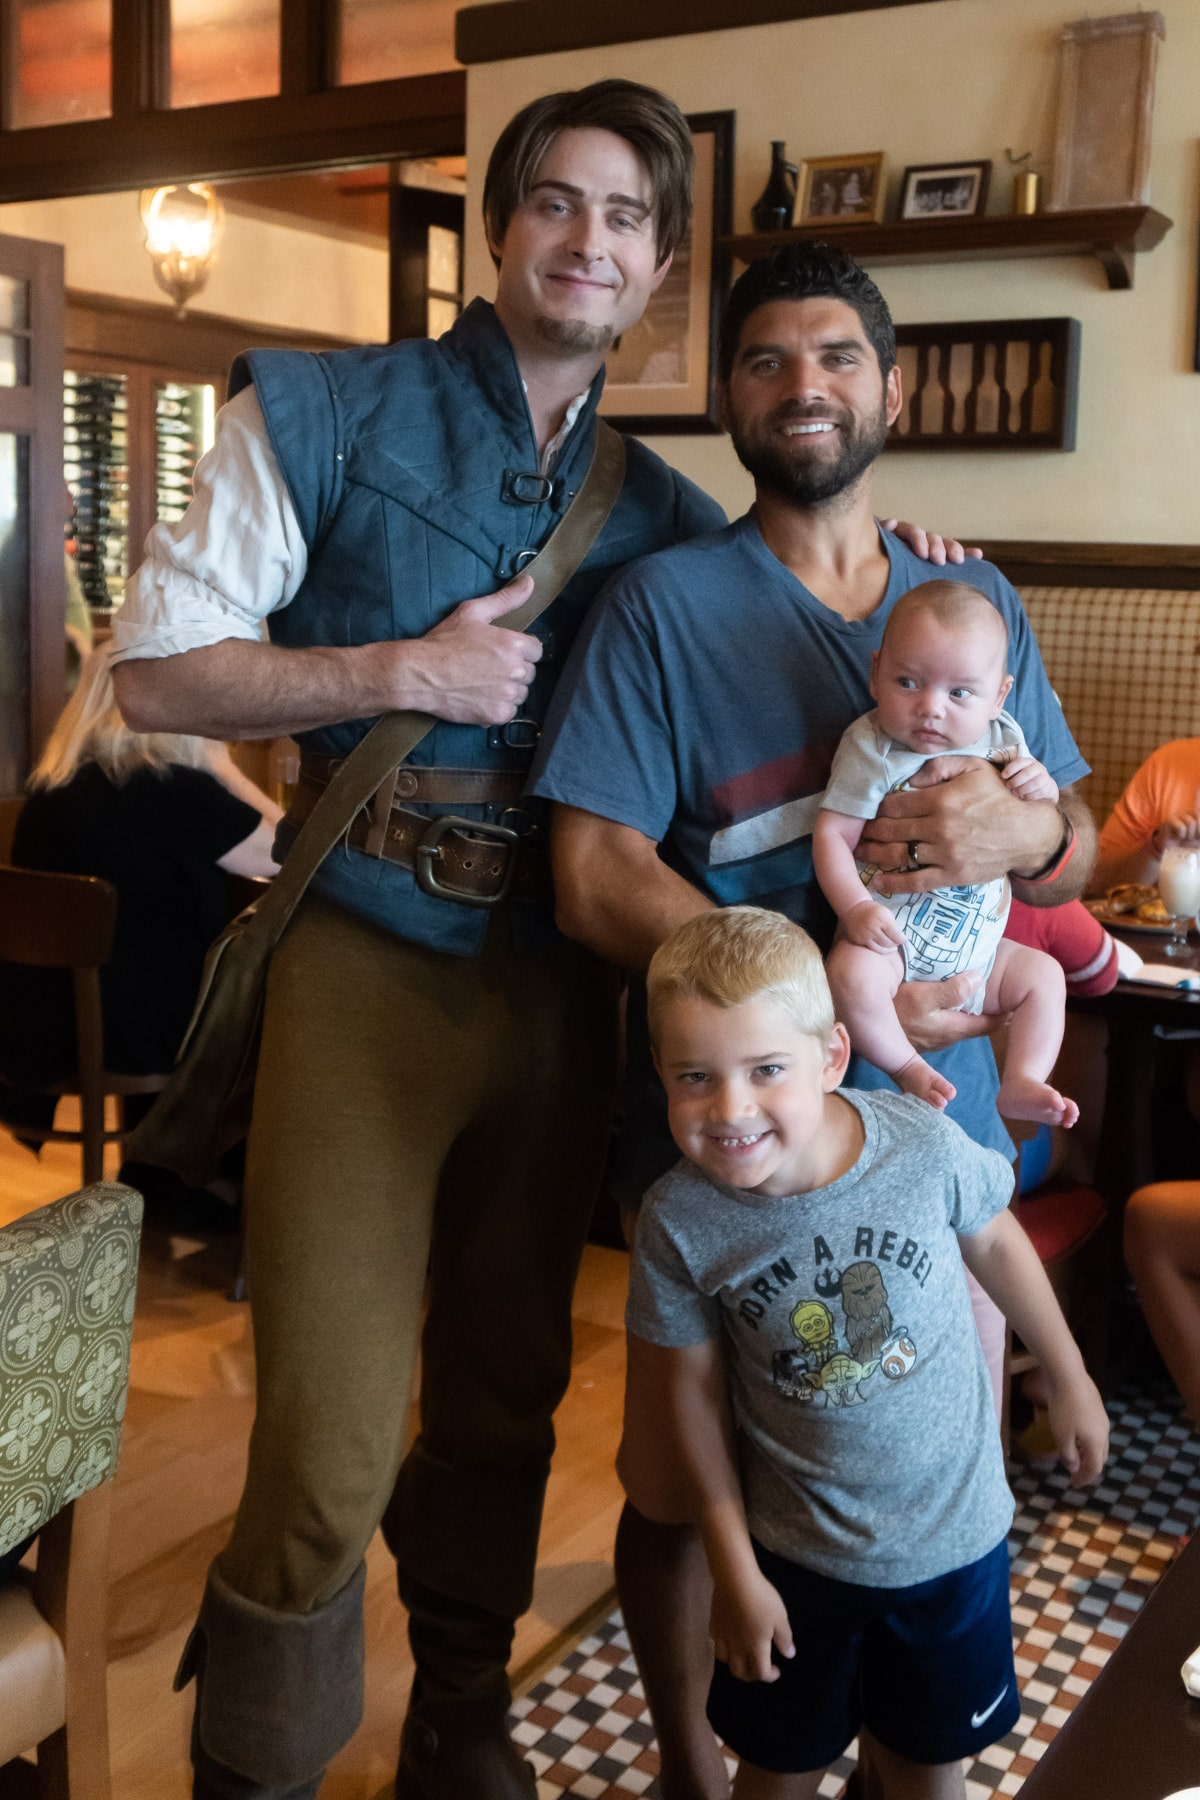 Family with Flynn Rider at Trattoria al Forno